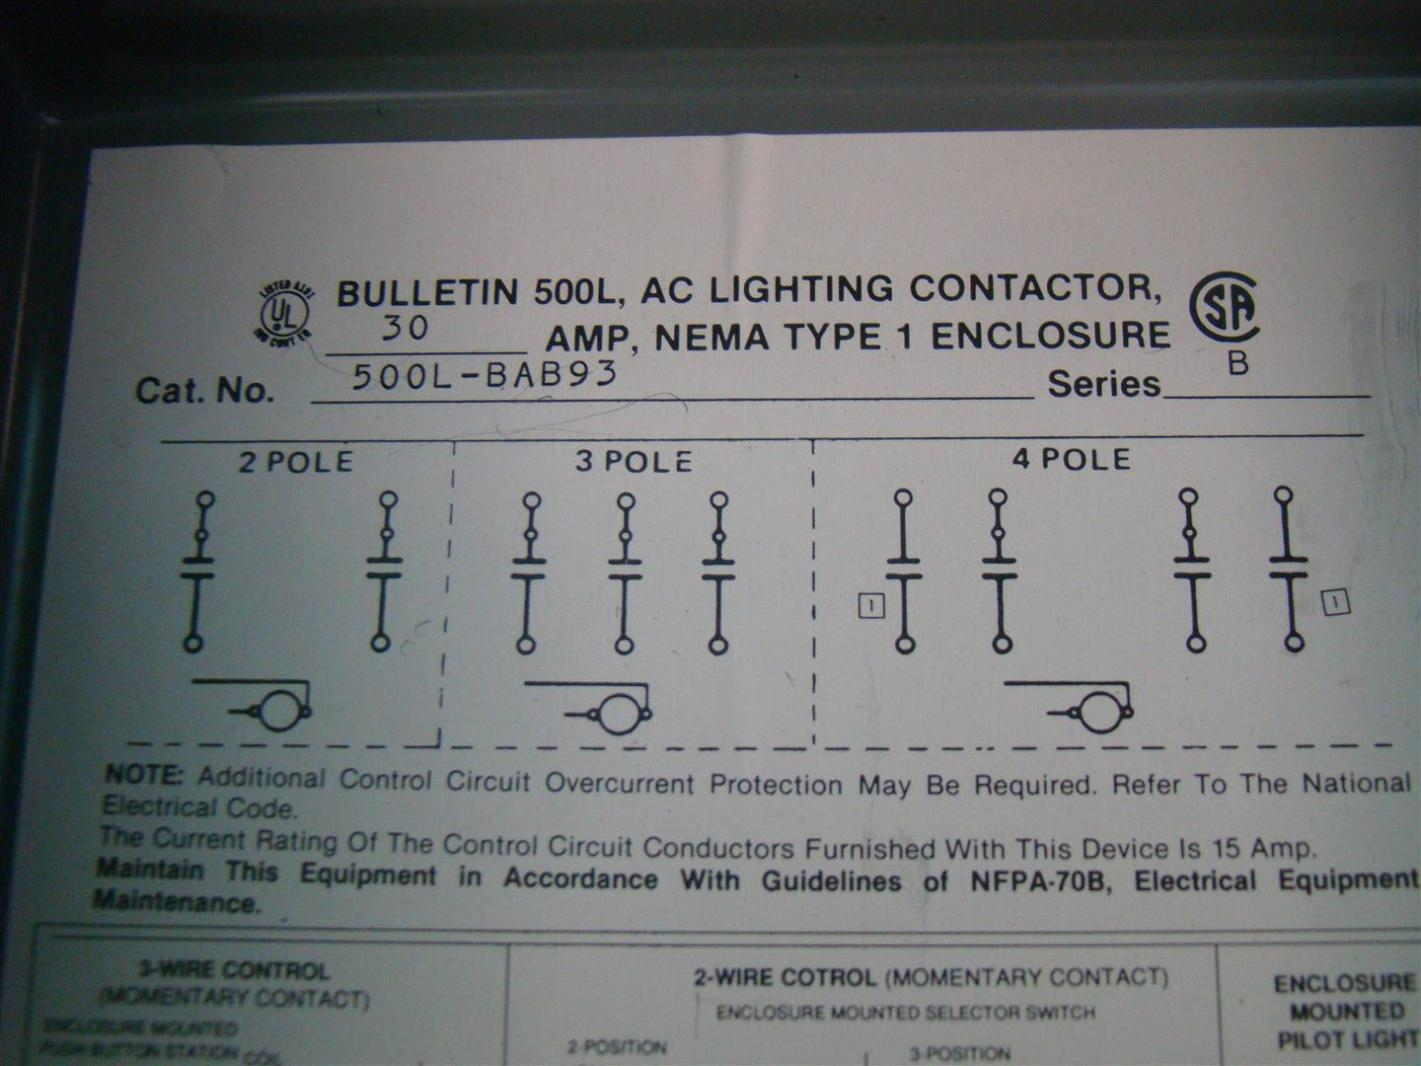 Allen Bradley Photoelectric Sensor Wiring Diagram Electrical For Area Lighting Research Photocell Reflector